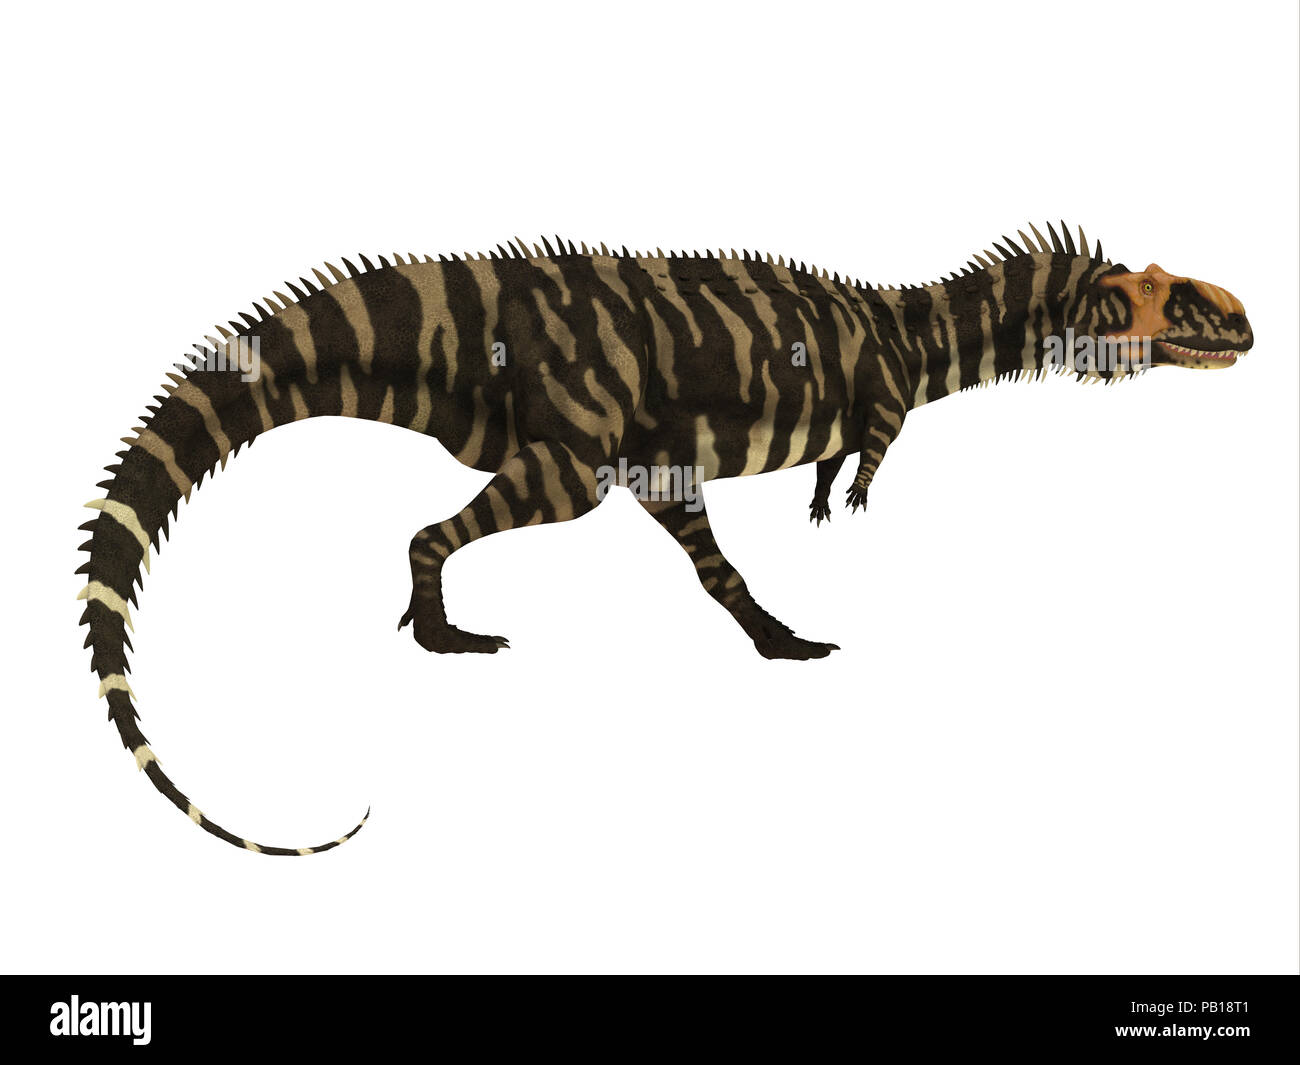 Rajasaurus Dinosaur Side Profile - Rajasaurus was a carnivorous theropod dinosaur that lived in India during the Cretaceous Period. - Stock Image